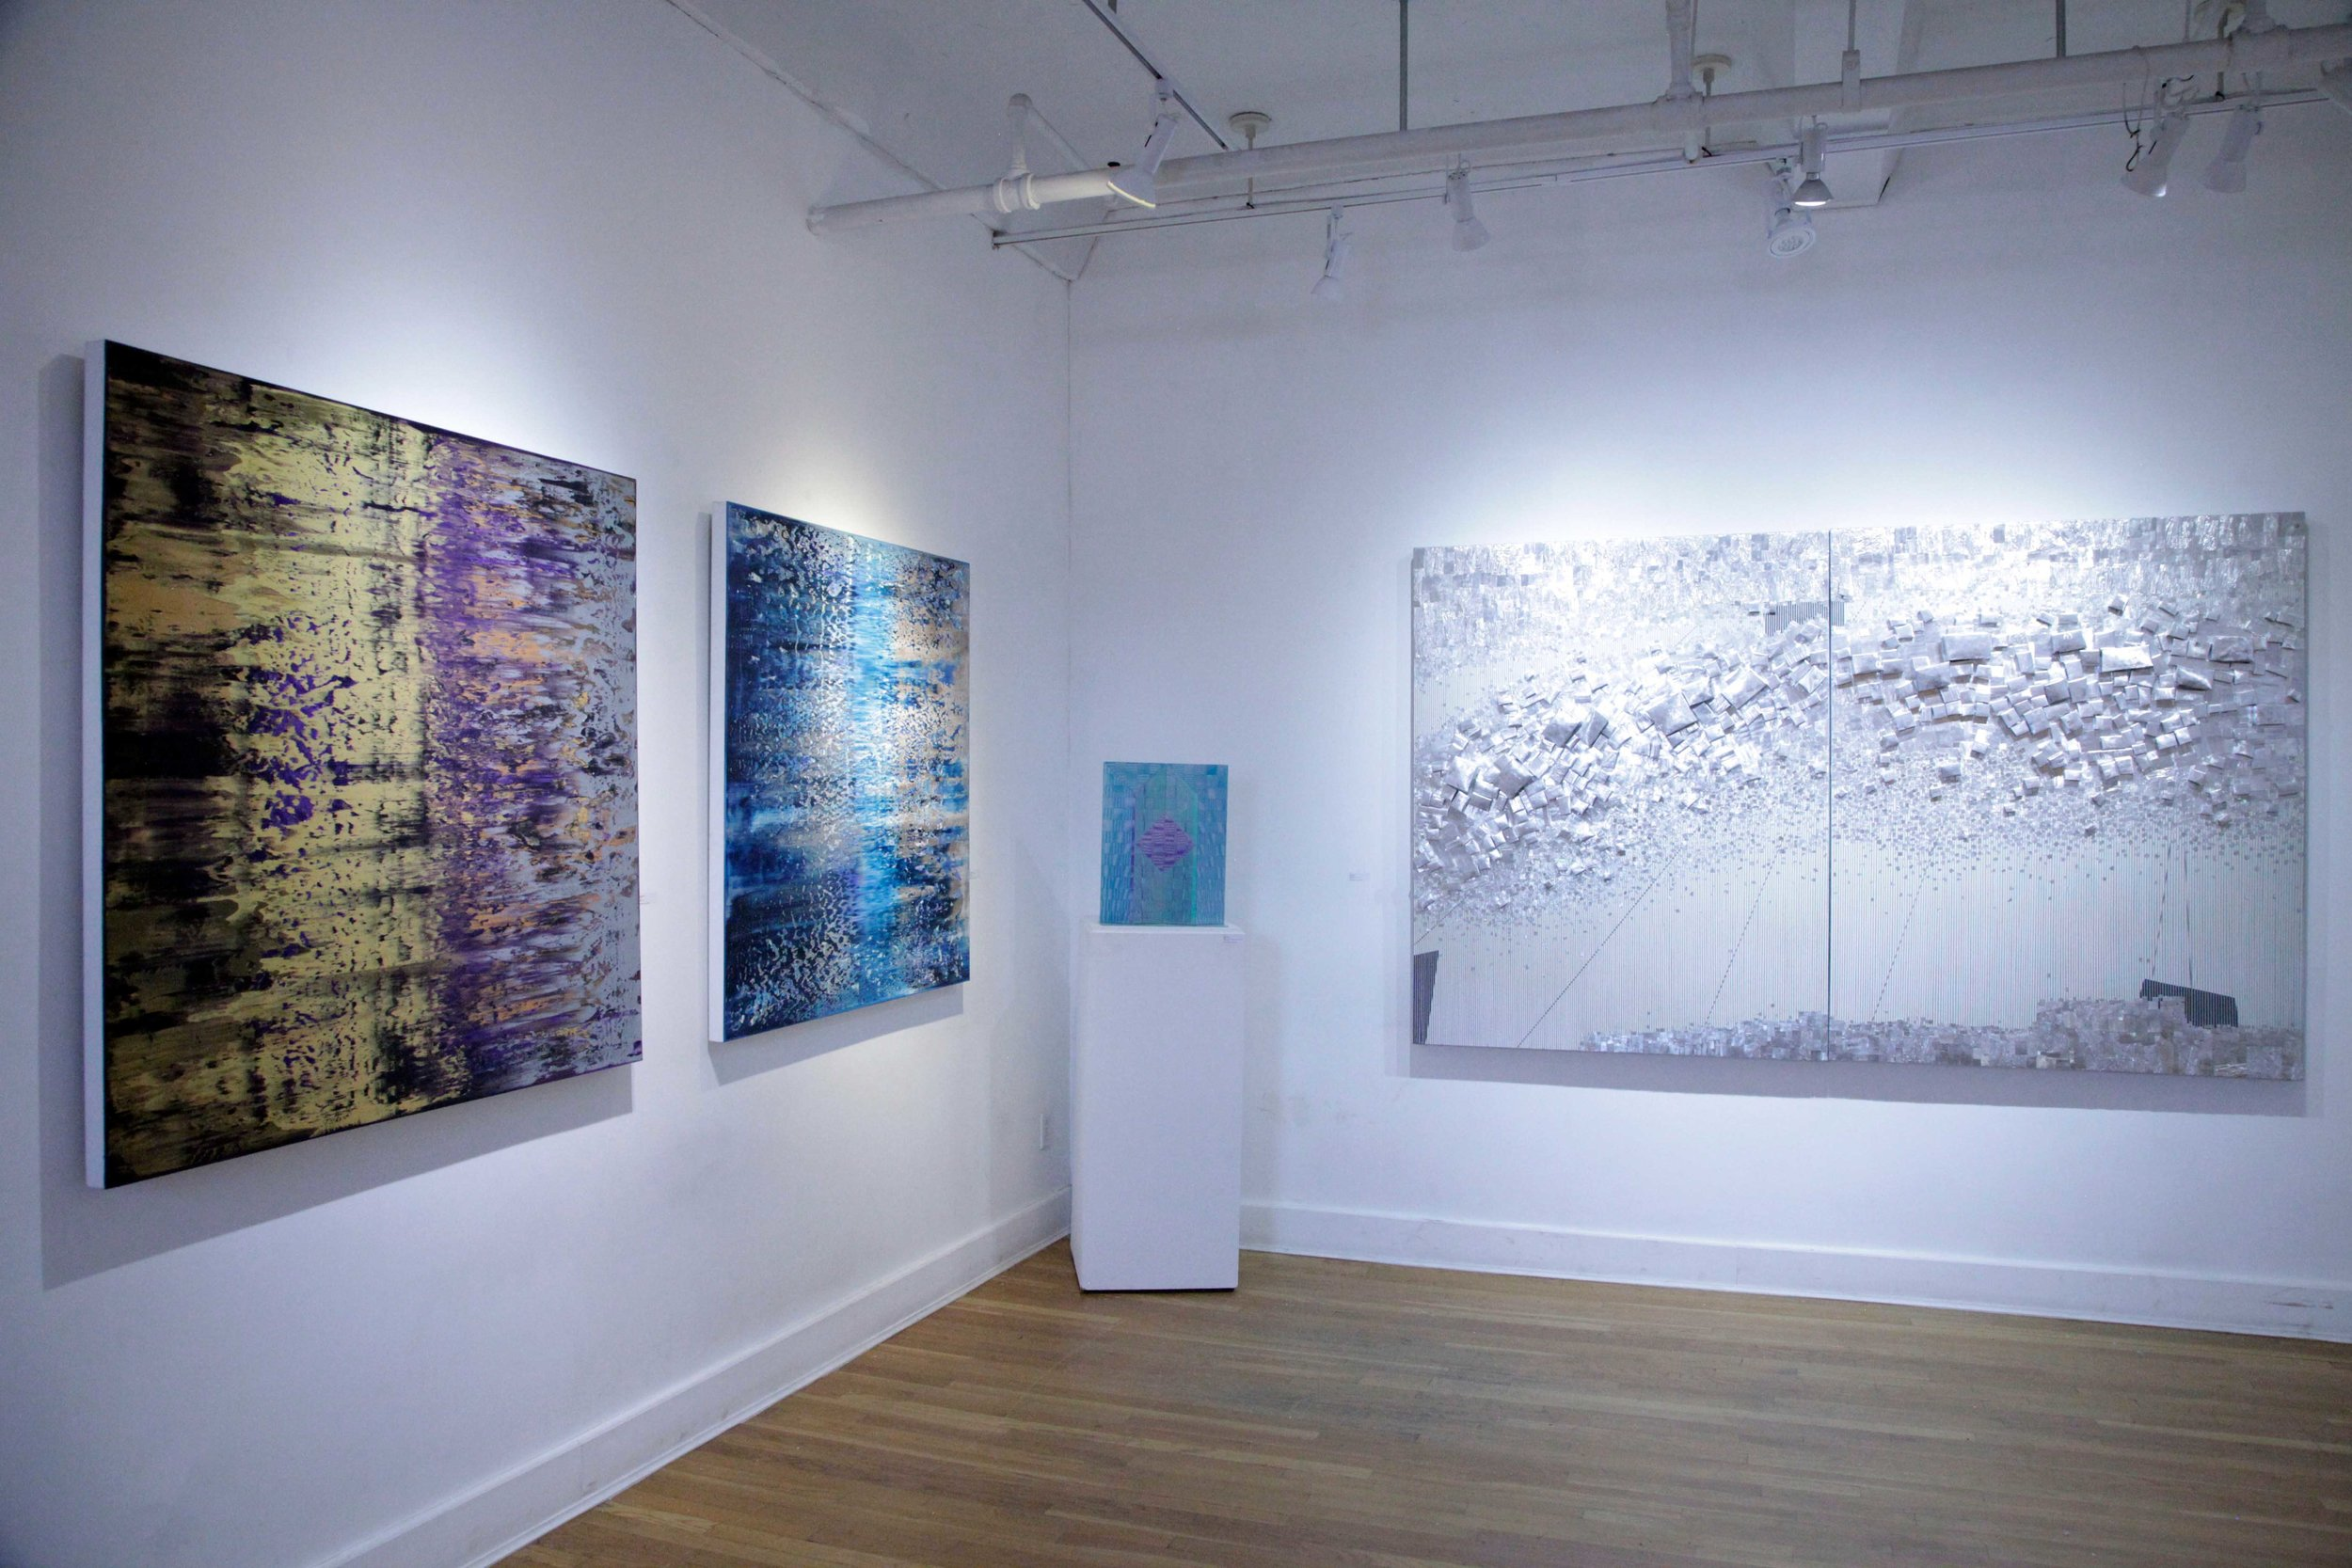 2019 Donghwa Ode Gallery, New York, U.S.A.